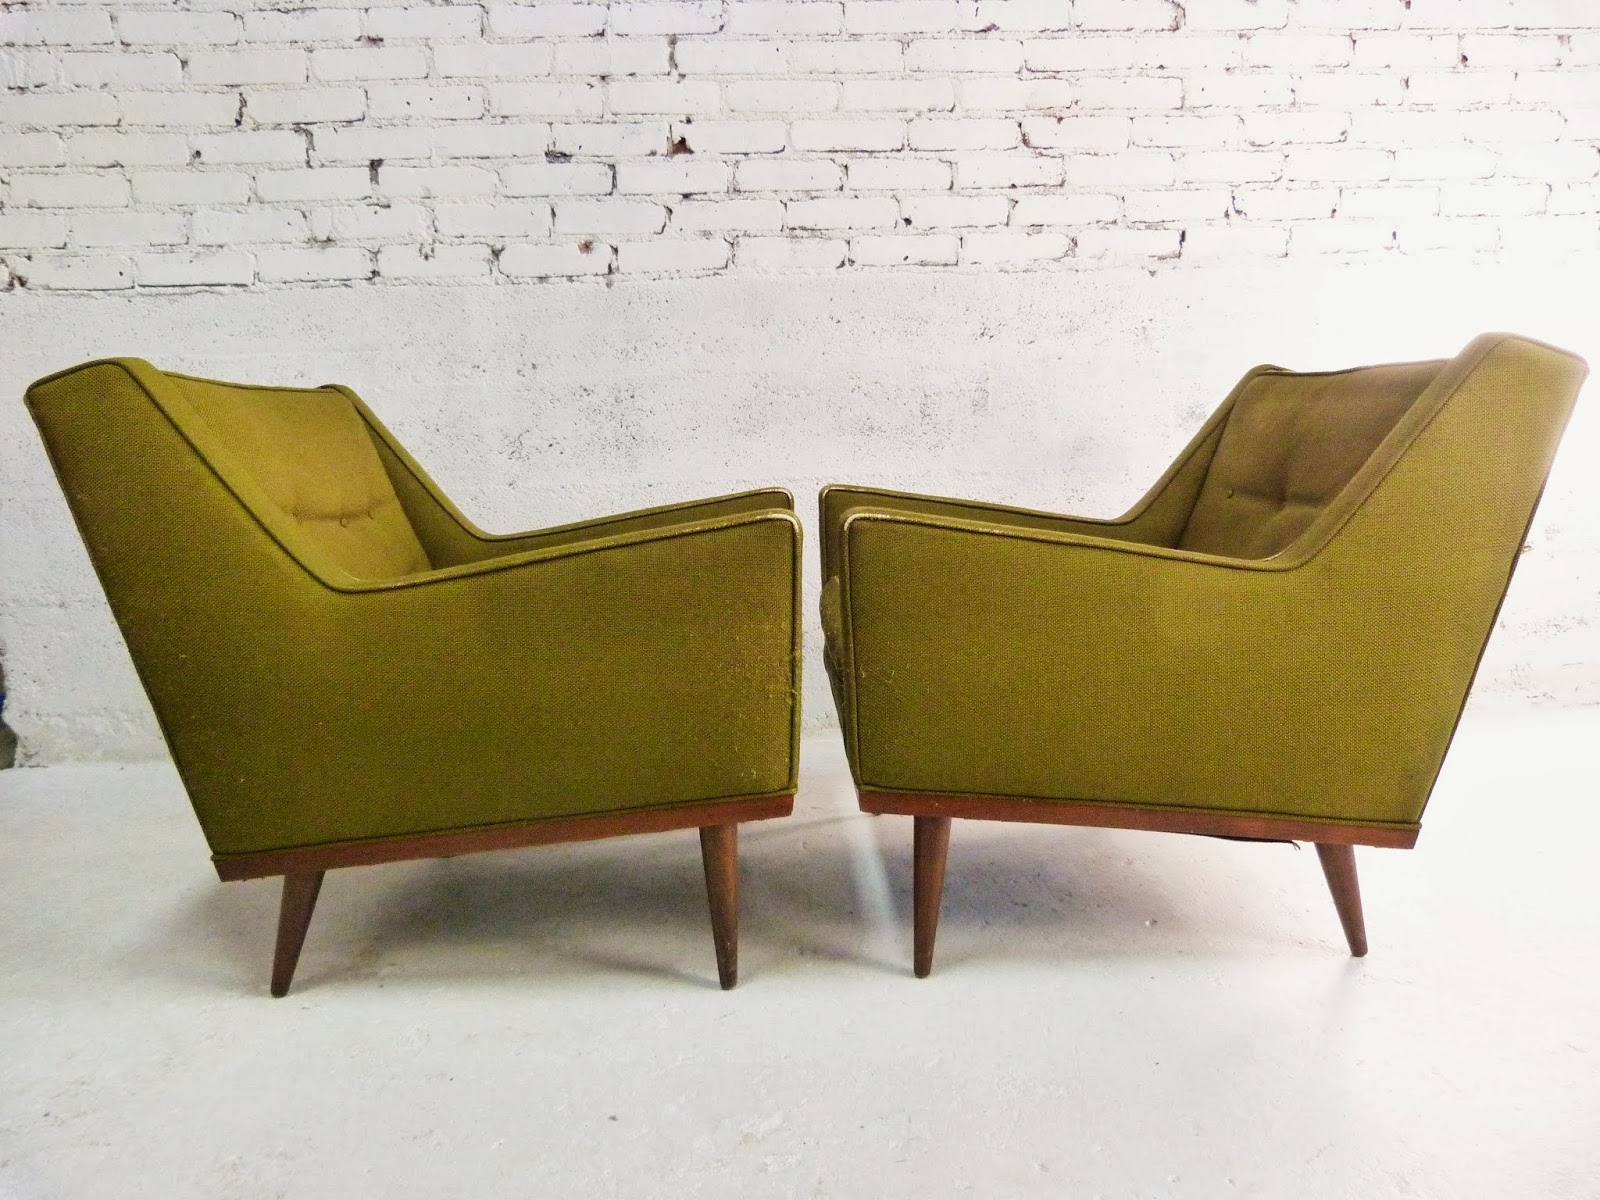 a pair of green midcentury modern sculptural lounge chairs